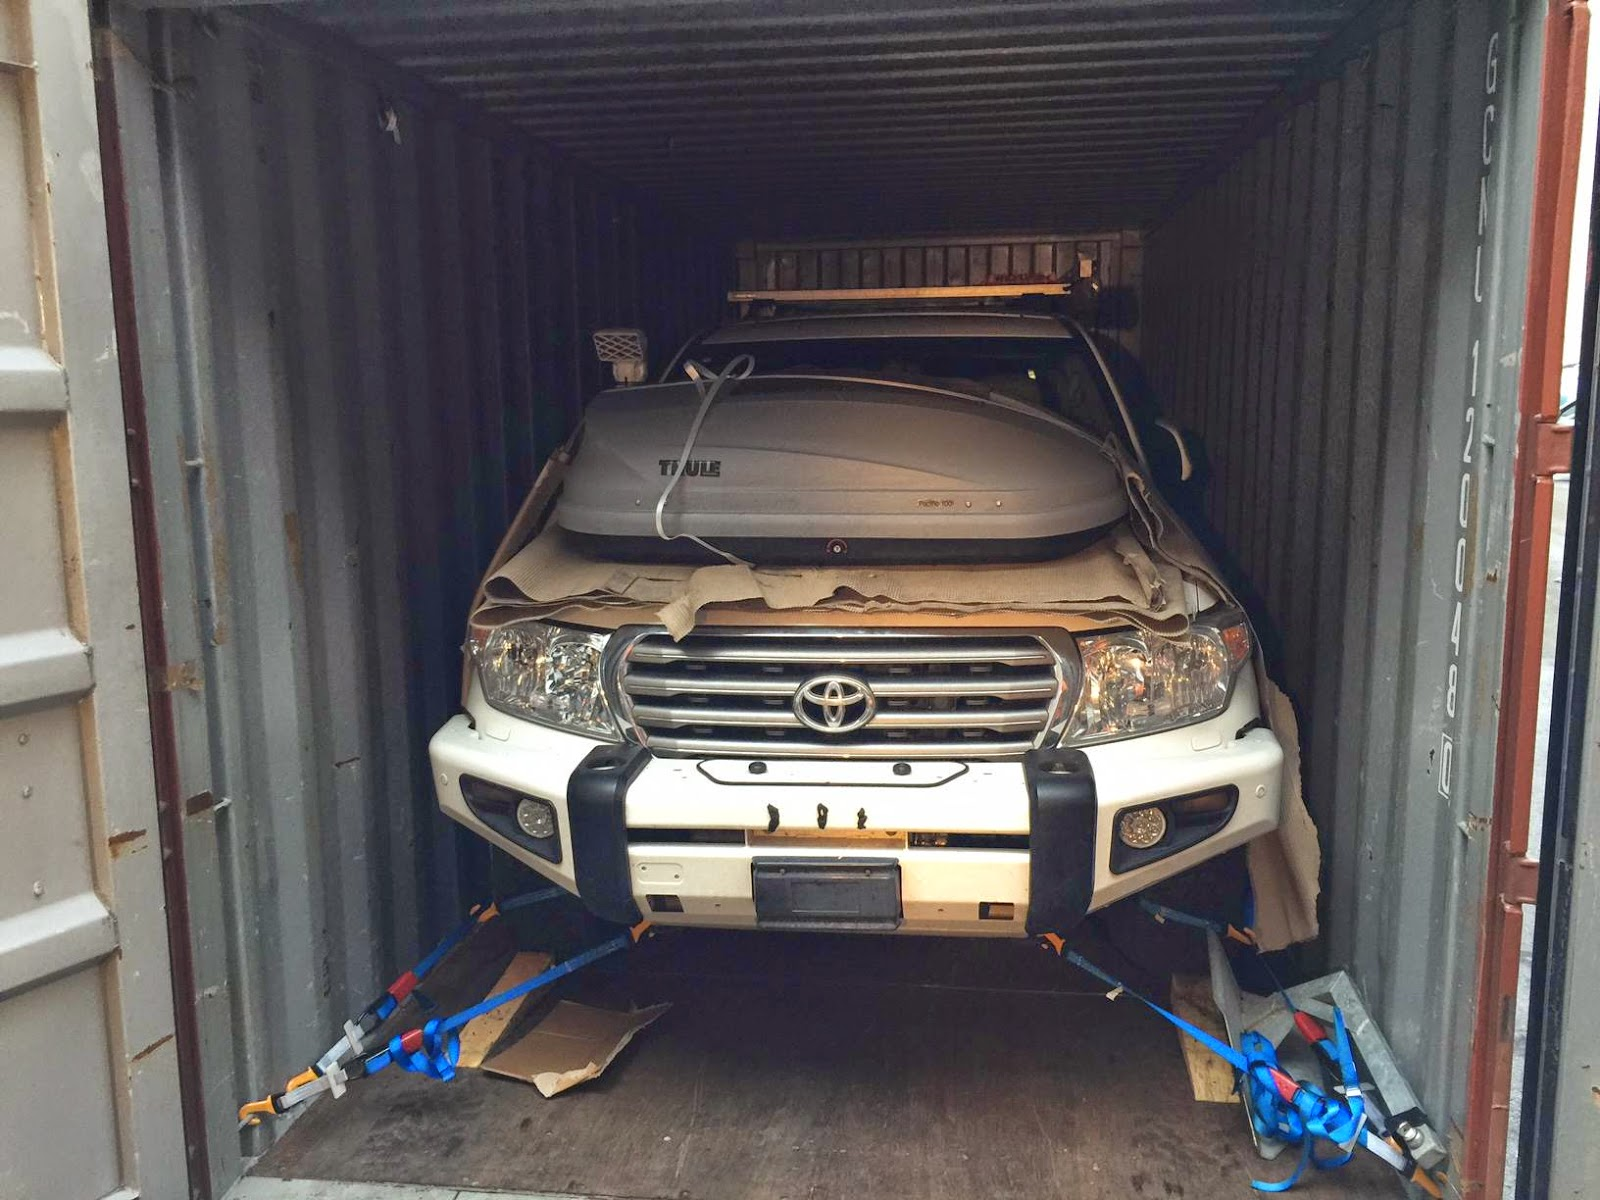 Container-Verschiffung-4x4-SUV-auto-5.jp